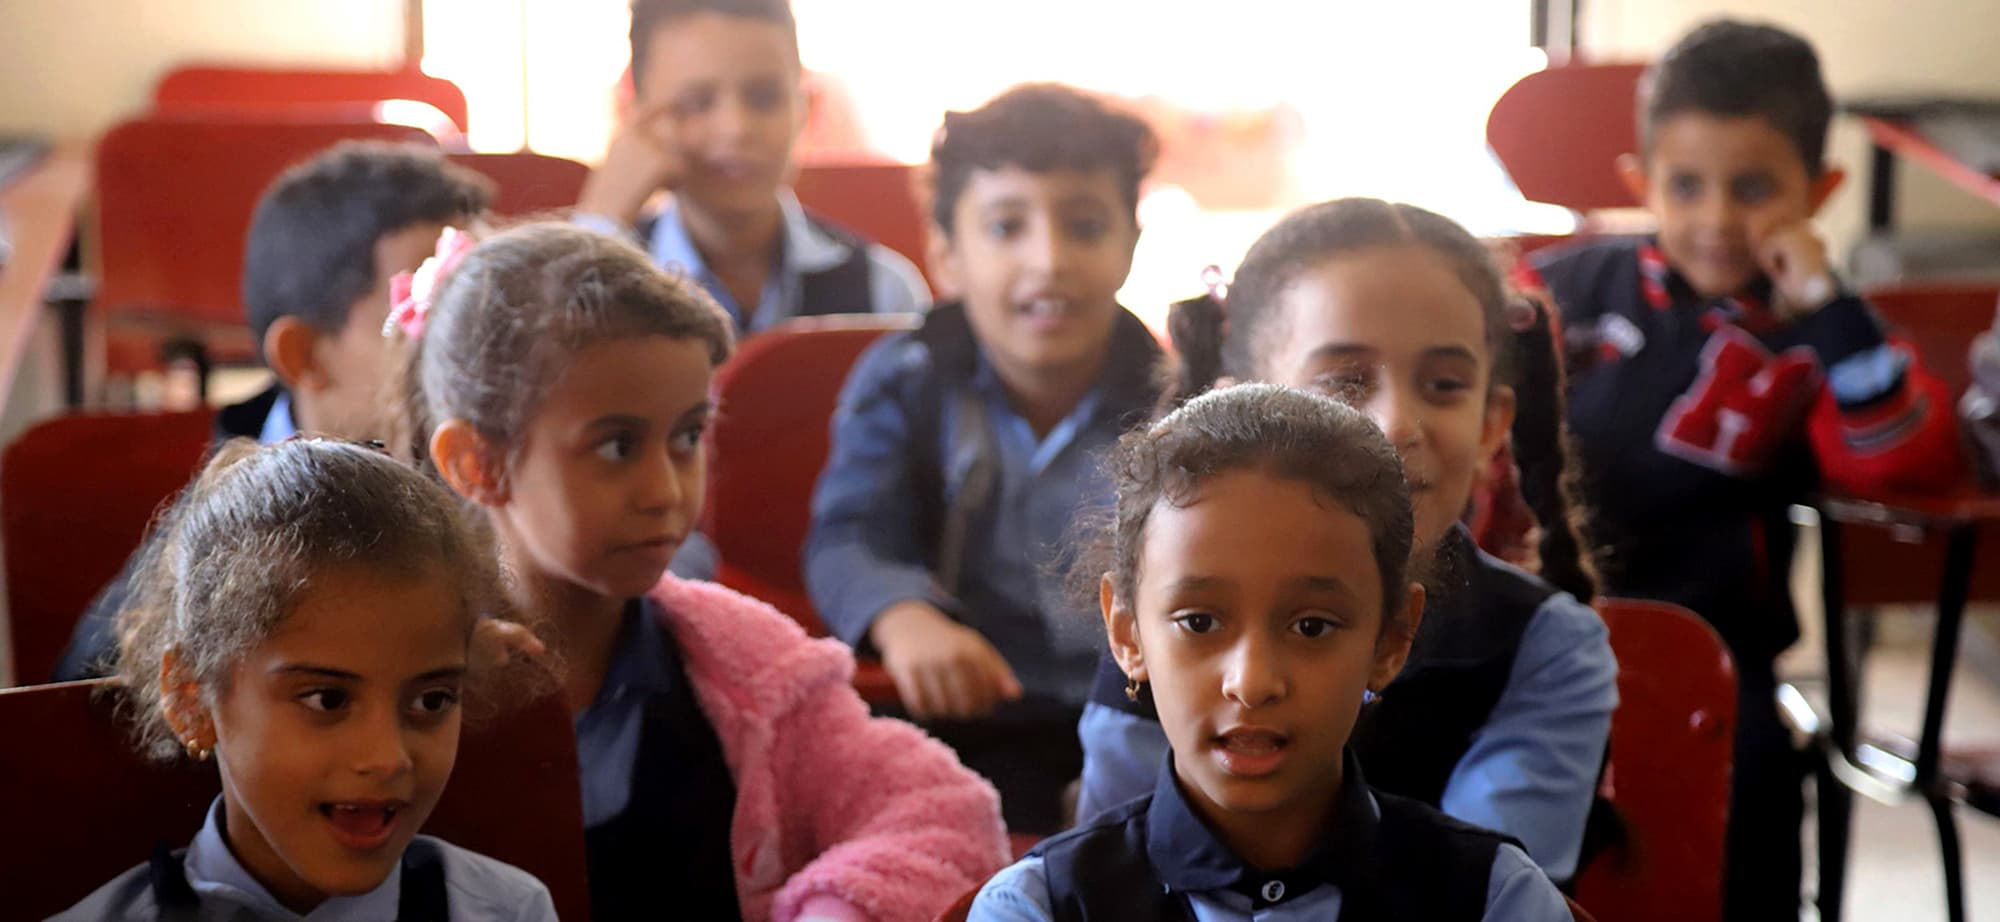 Children attend a music class at the Al-Nawras school in Taez, Yemen's third city, in the country's southwest, on January 23, 2019. - The three-storey Al-Nawras school was hit in 2015-2016, right after Saudi Arabia and its allies joined the government's fight against the Huthis. When it reopened its doors, walls still pockmarked with bullet holes, educators decided to expand the music programme, making it part of the core curriculum alongside maths and Arabic, with the hope that it would restore joy to their students' days. (Photo by AHMAD AL-BASHA / AFP) — AFP or licensors